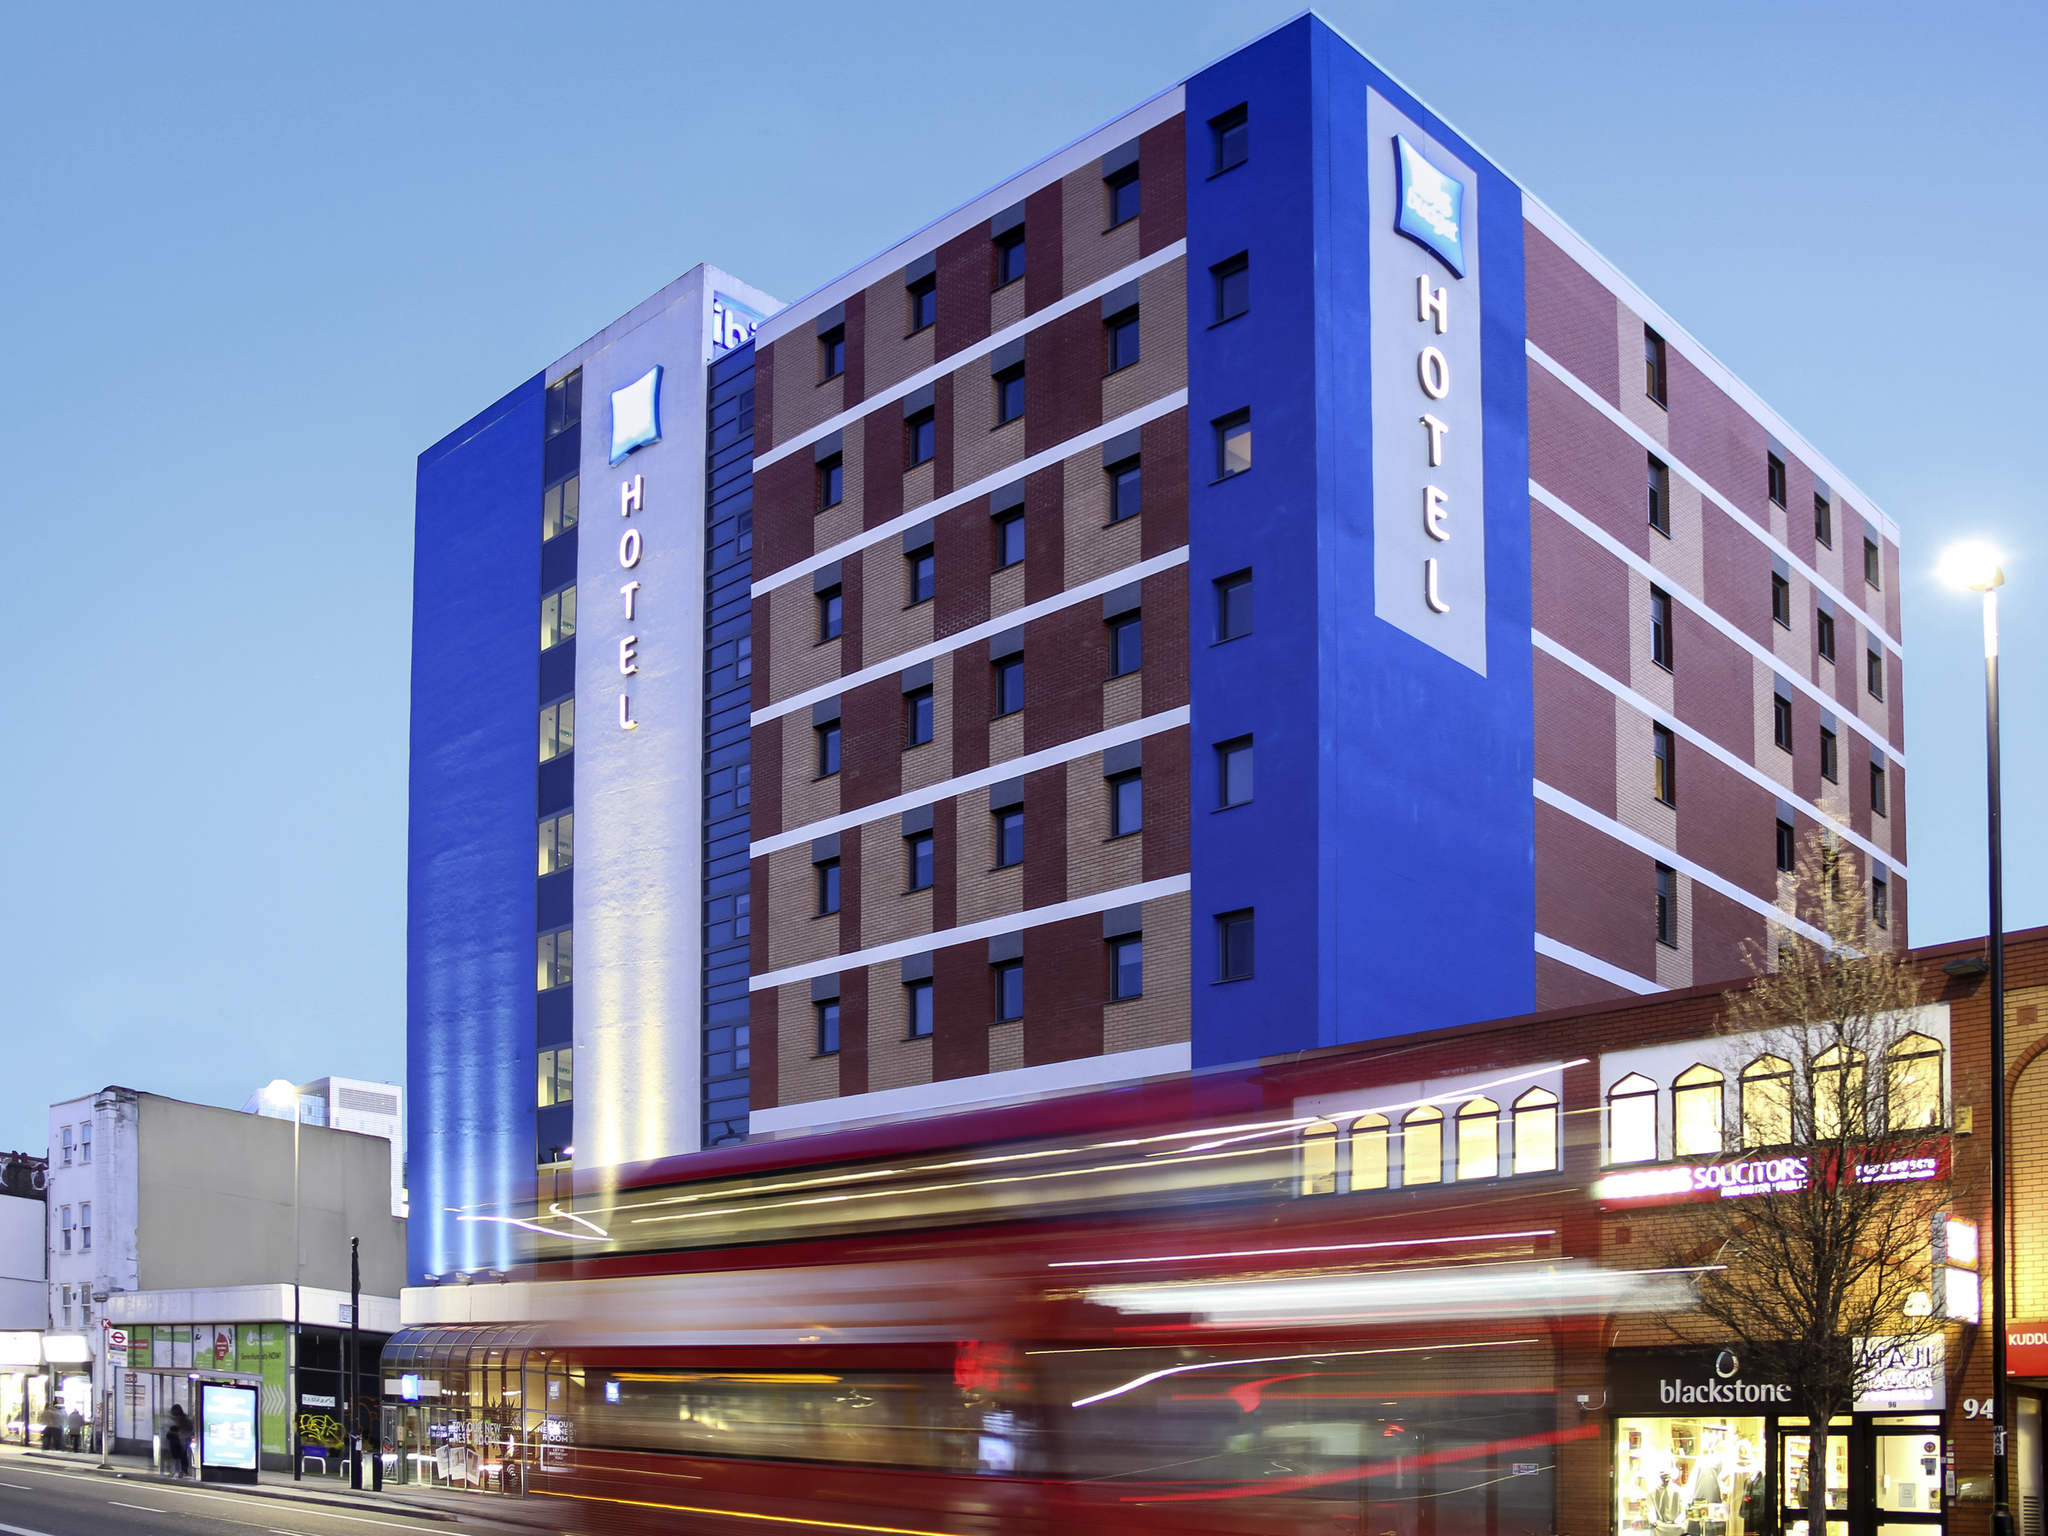 H tel londres ibis budget londres whitechapel brick lane for Hotel cube londres